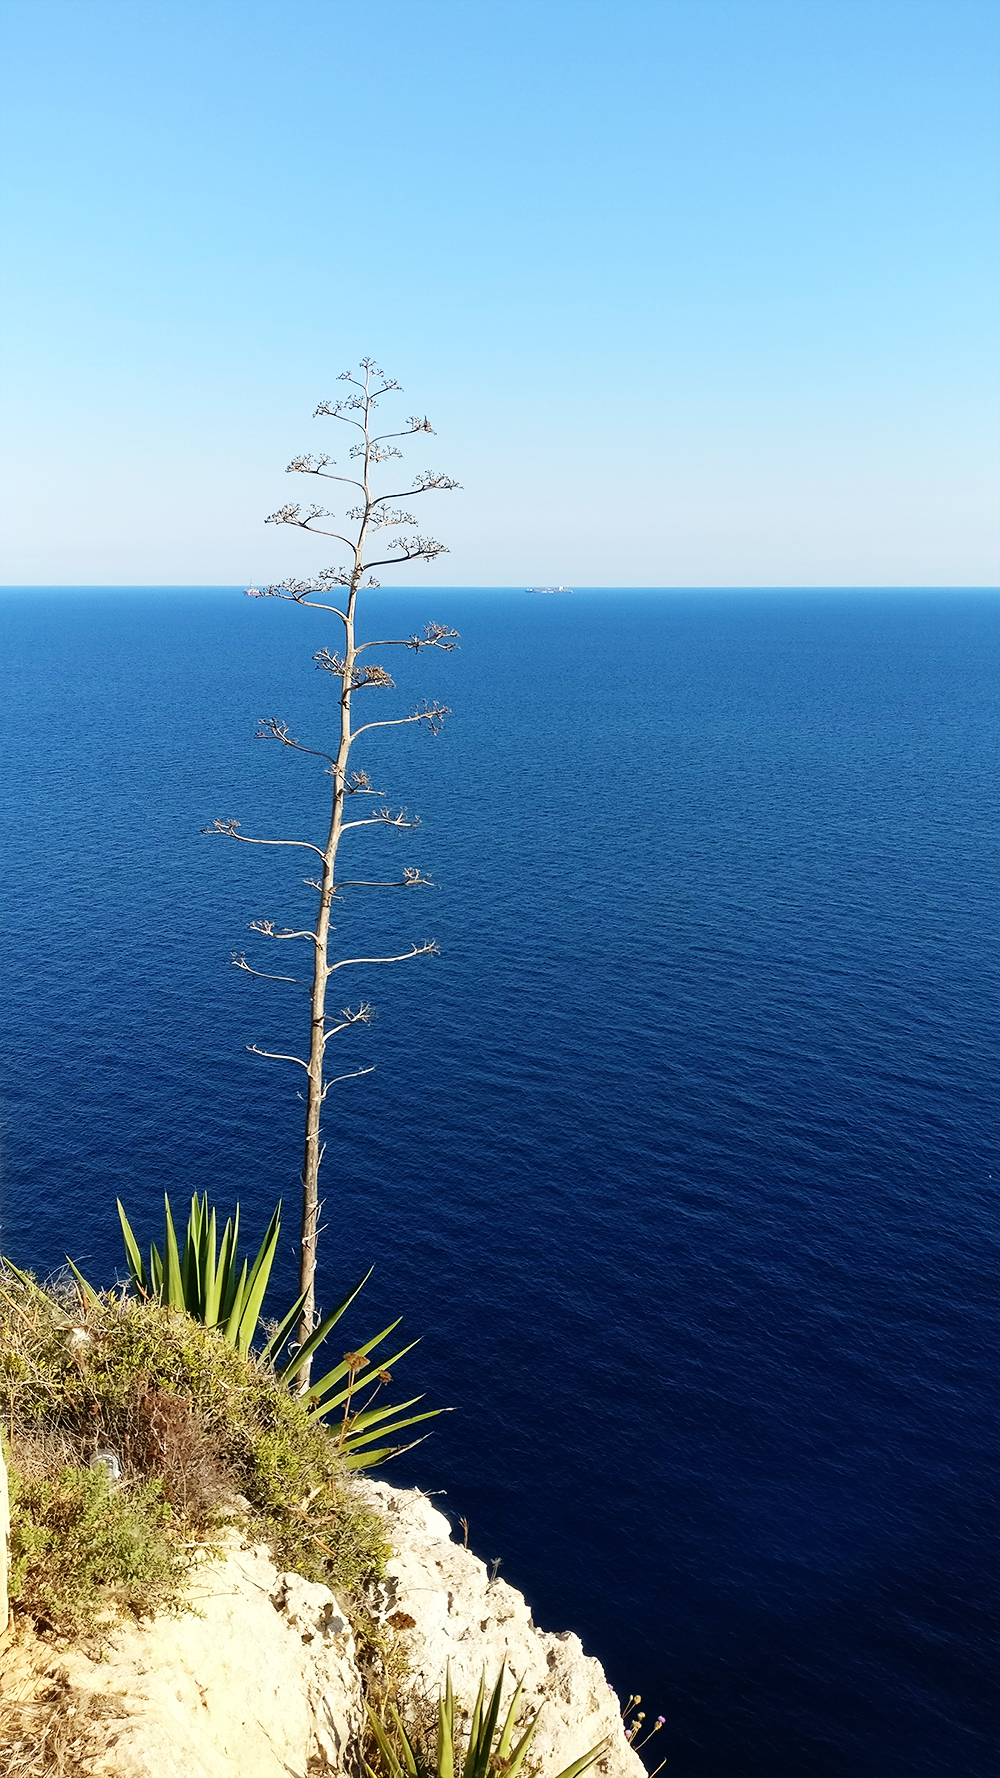 About Malta - The islands - agave trees at Blue Grotto Panorama